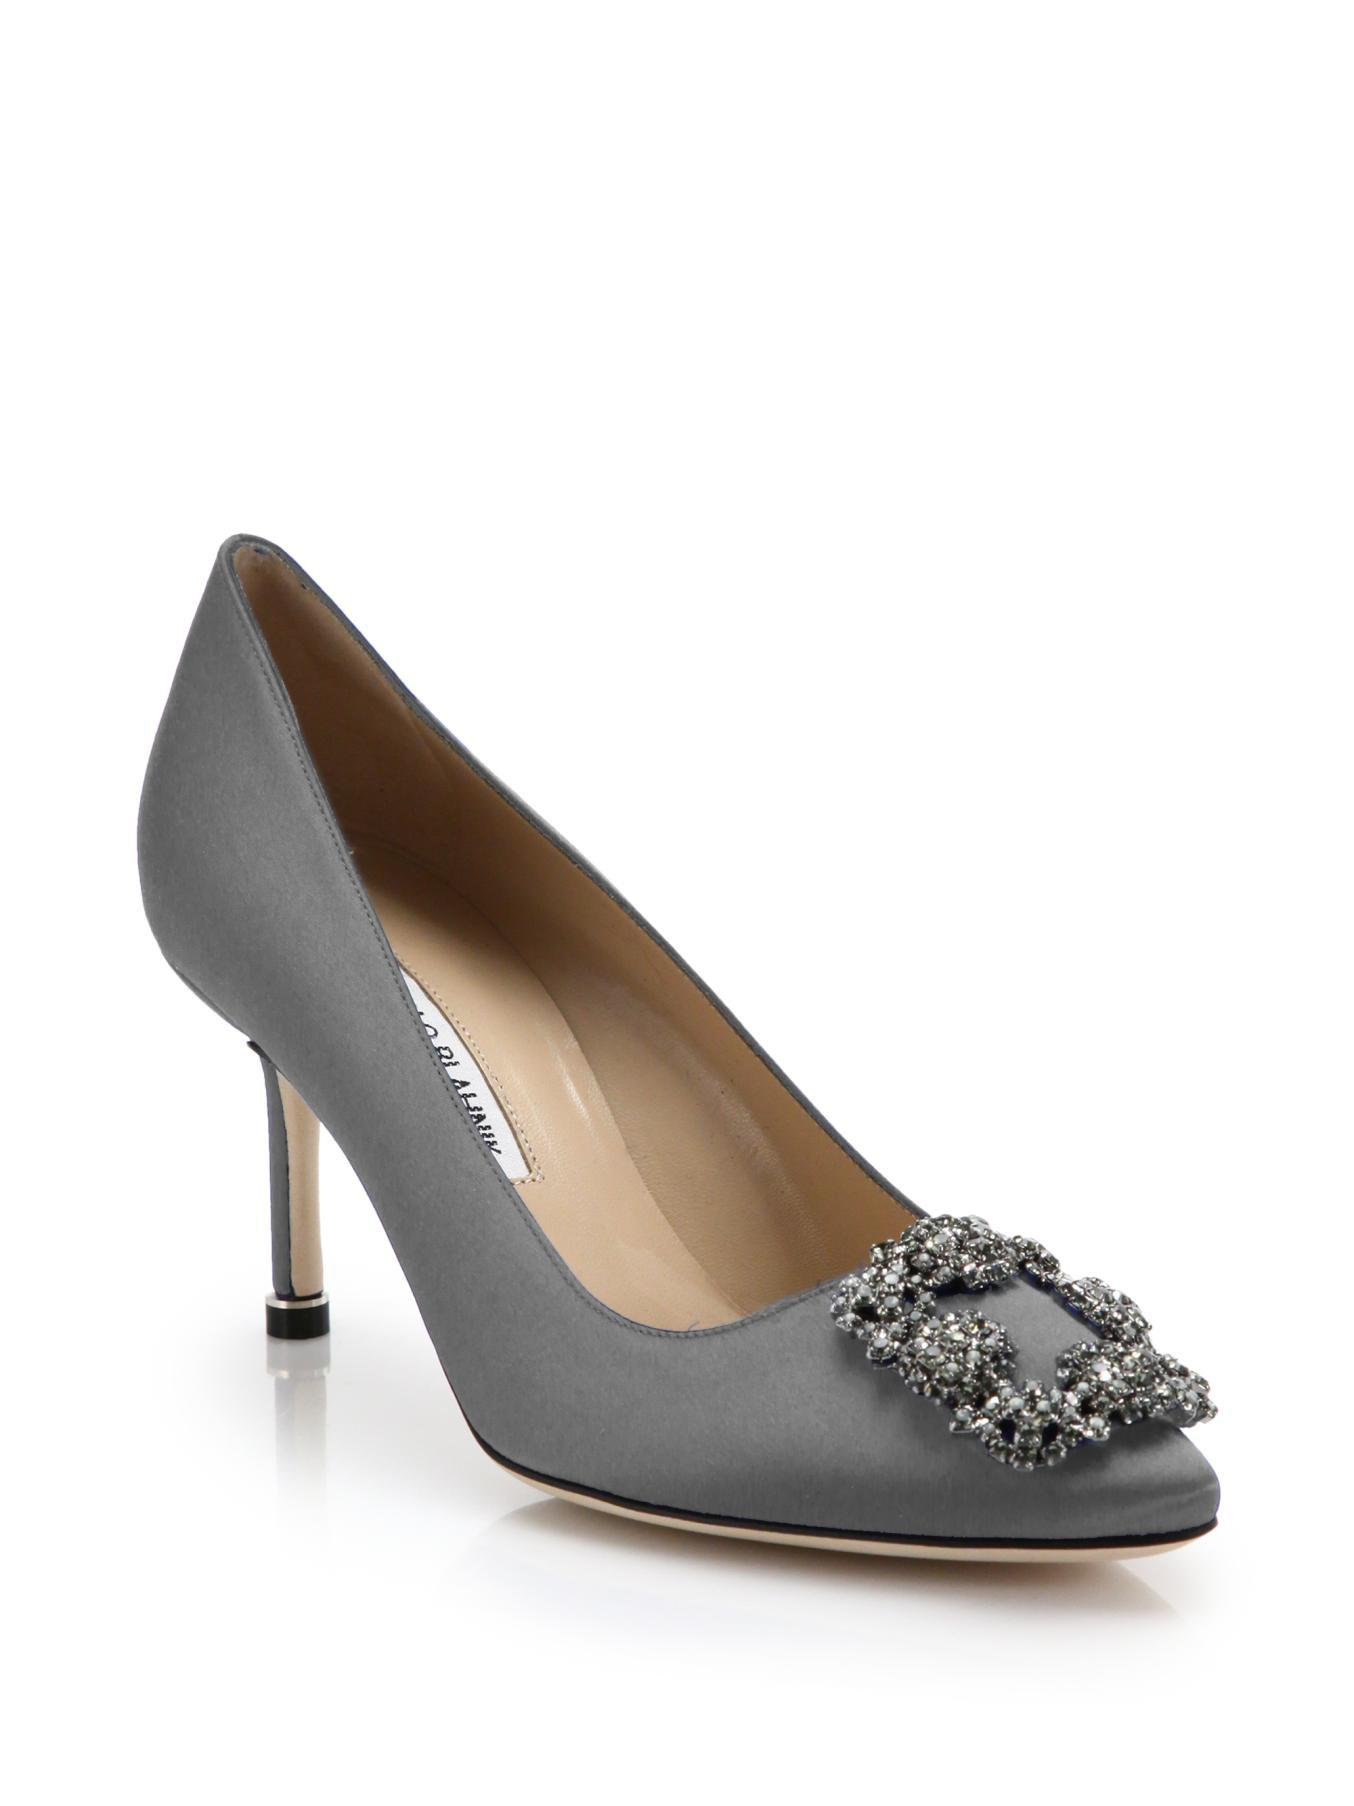 Manolo Blahnik Embellished Alligator Pumps buy cheap Inexpensive free shipping outlet store cheap sale 2015 new cheap sale low price FPNCg